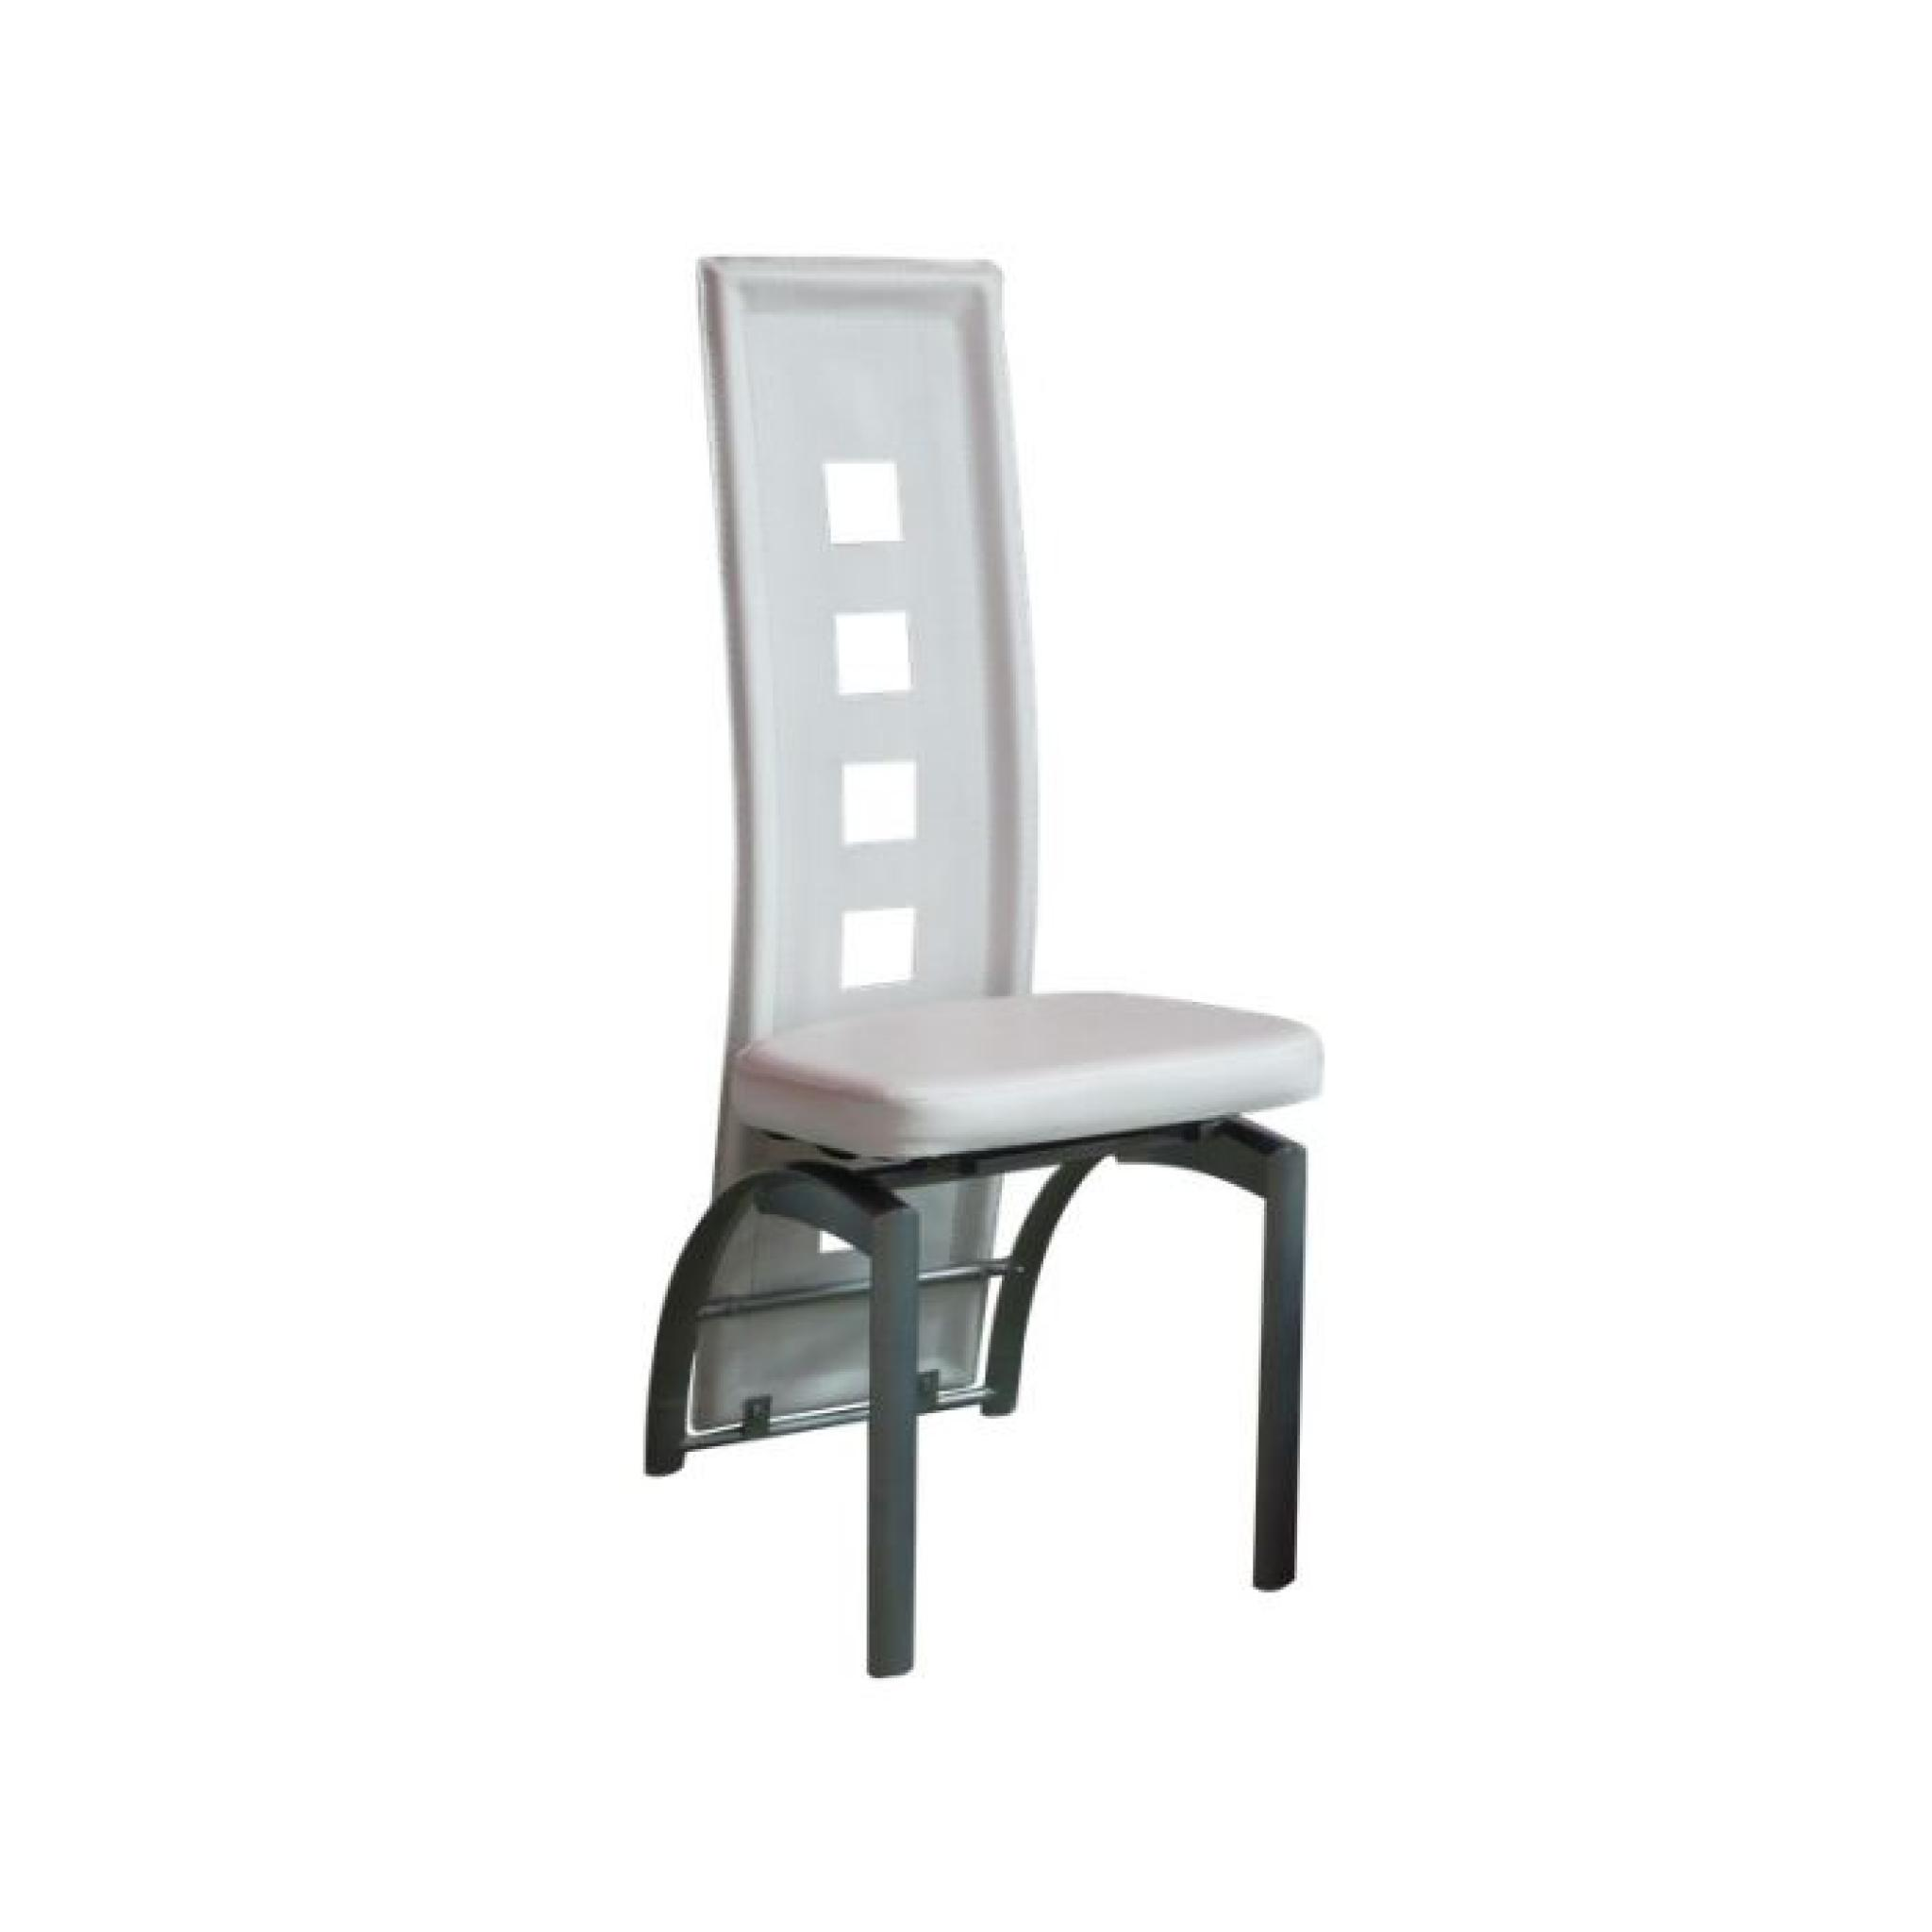 Eve Lot 6 Chaises Blanches